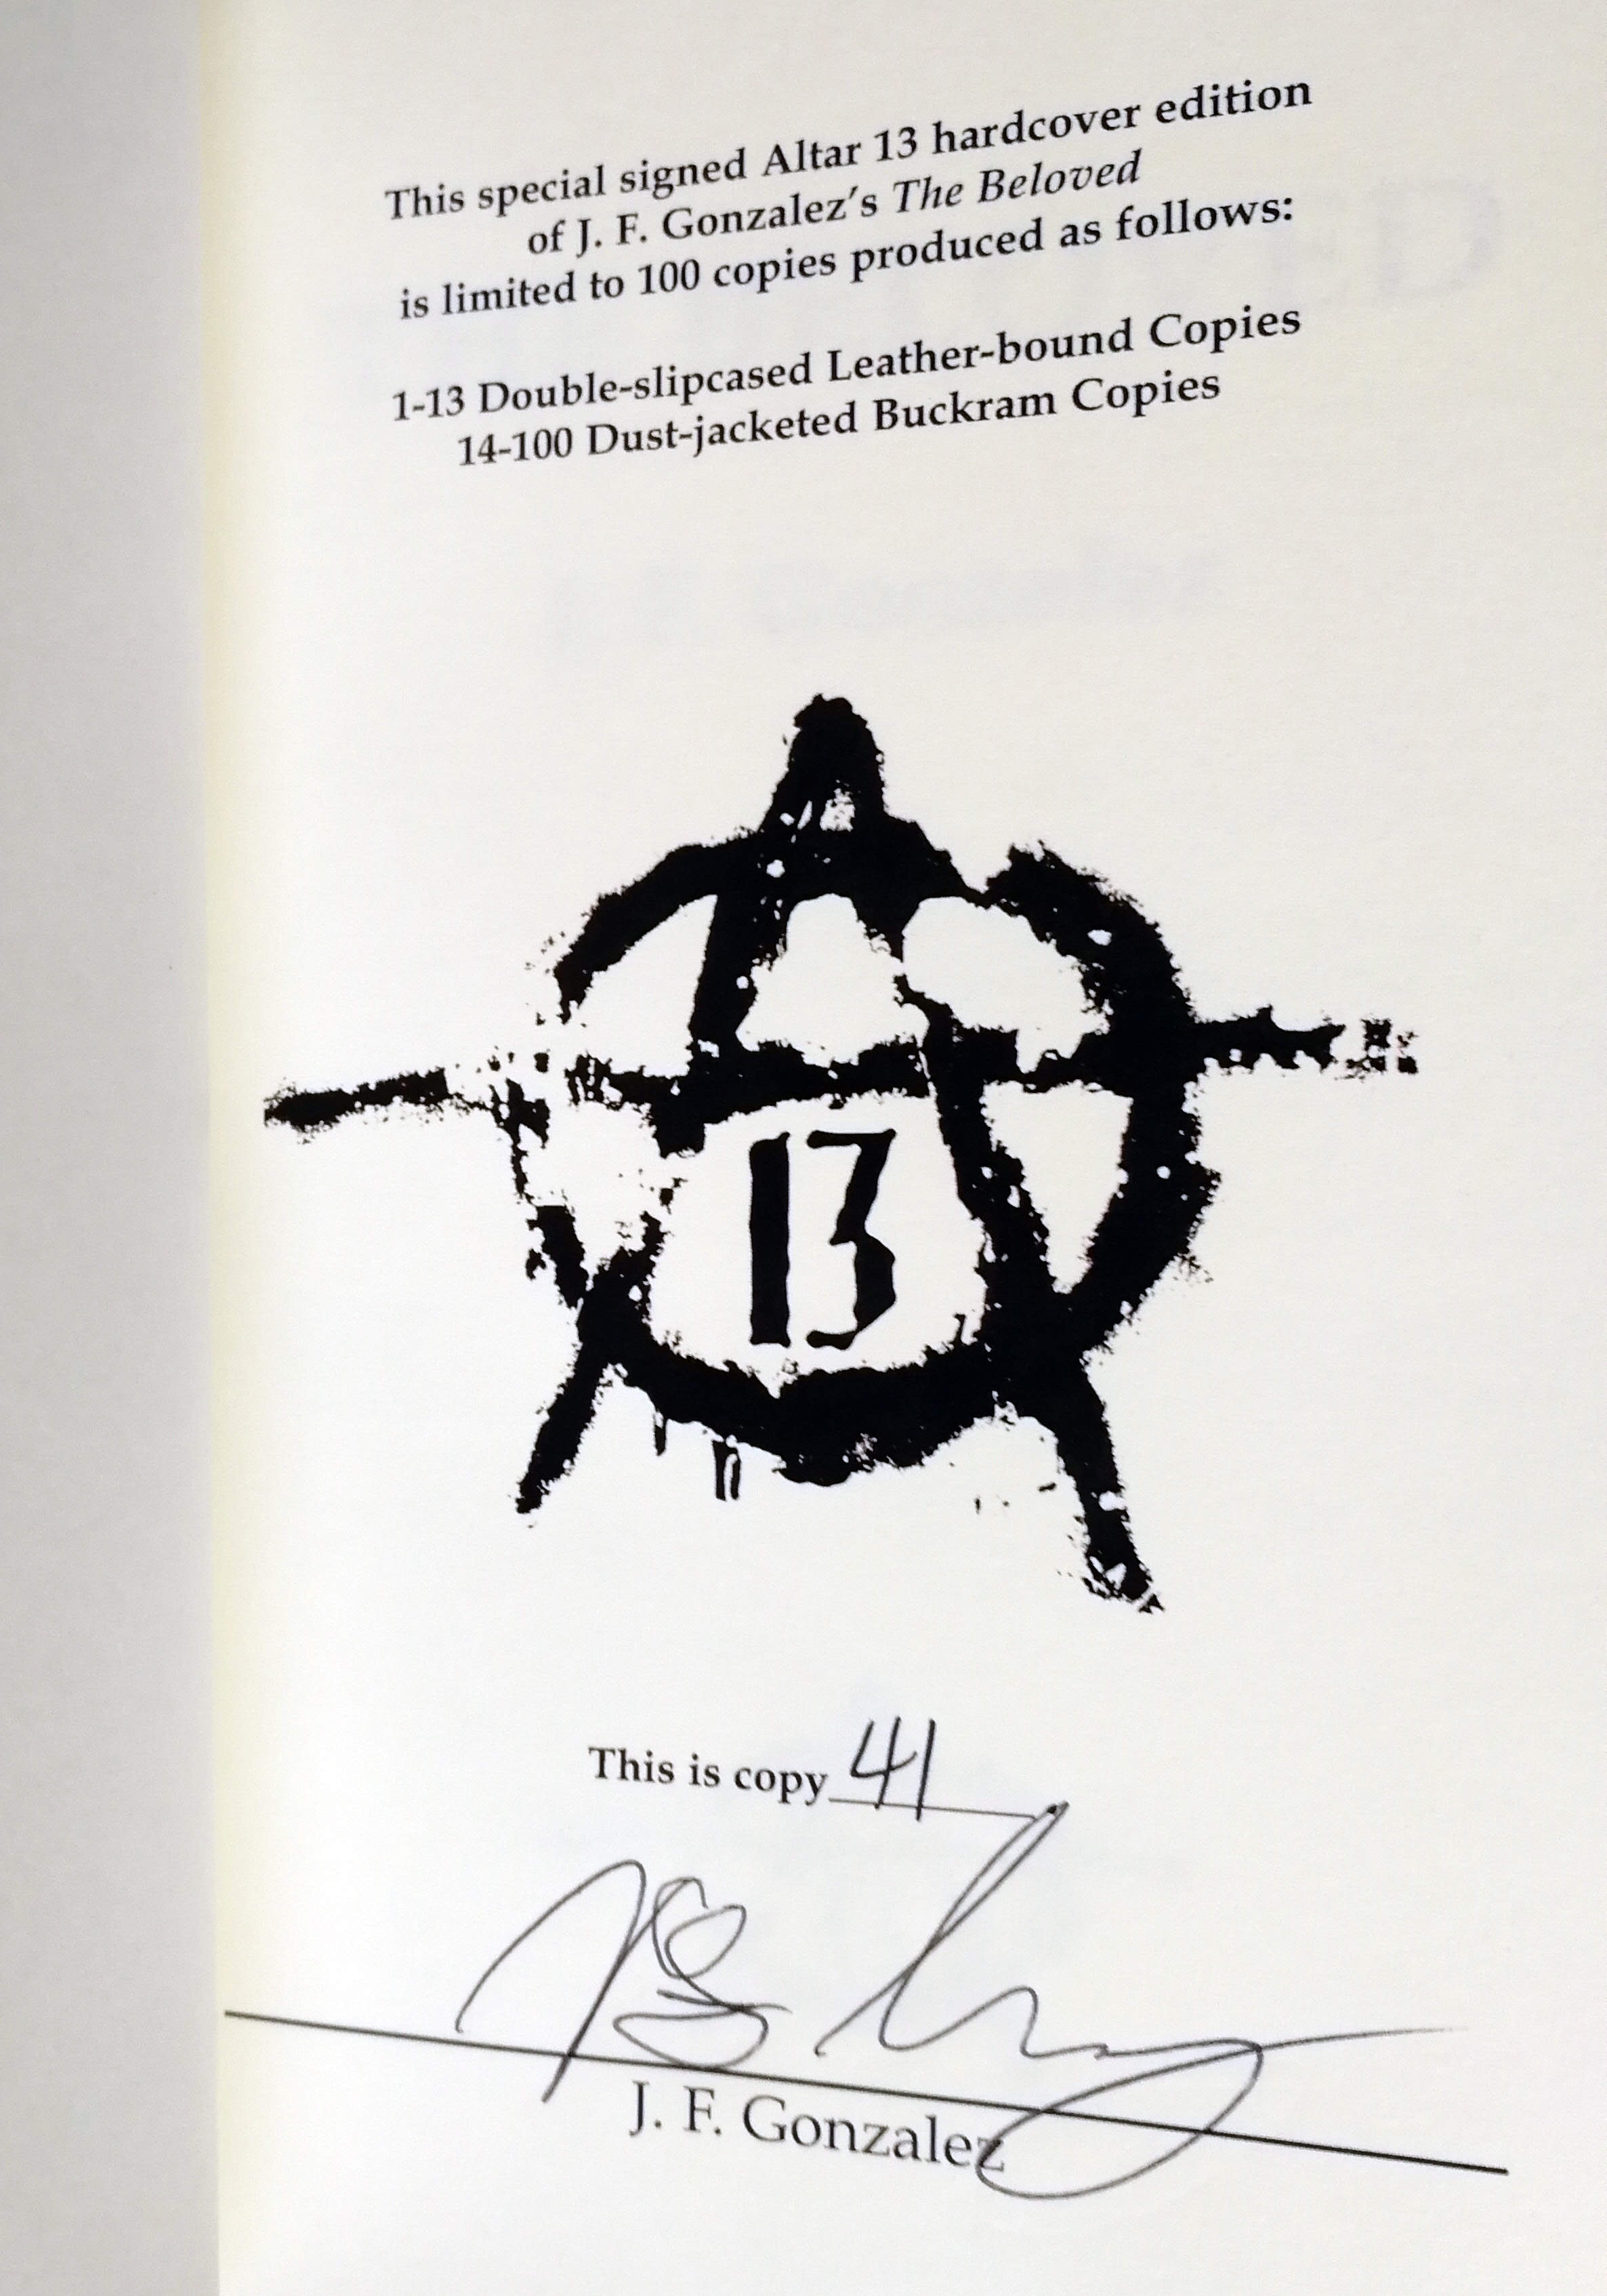 The Beloved Signed Limited Edition